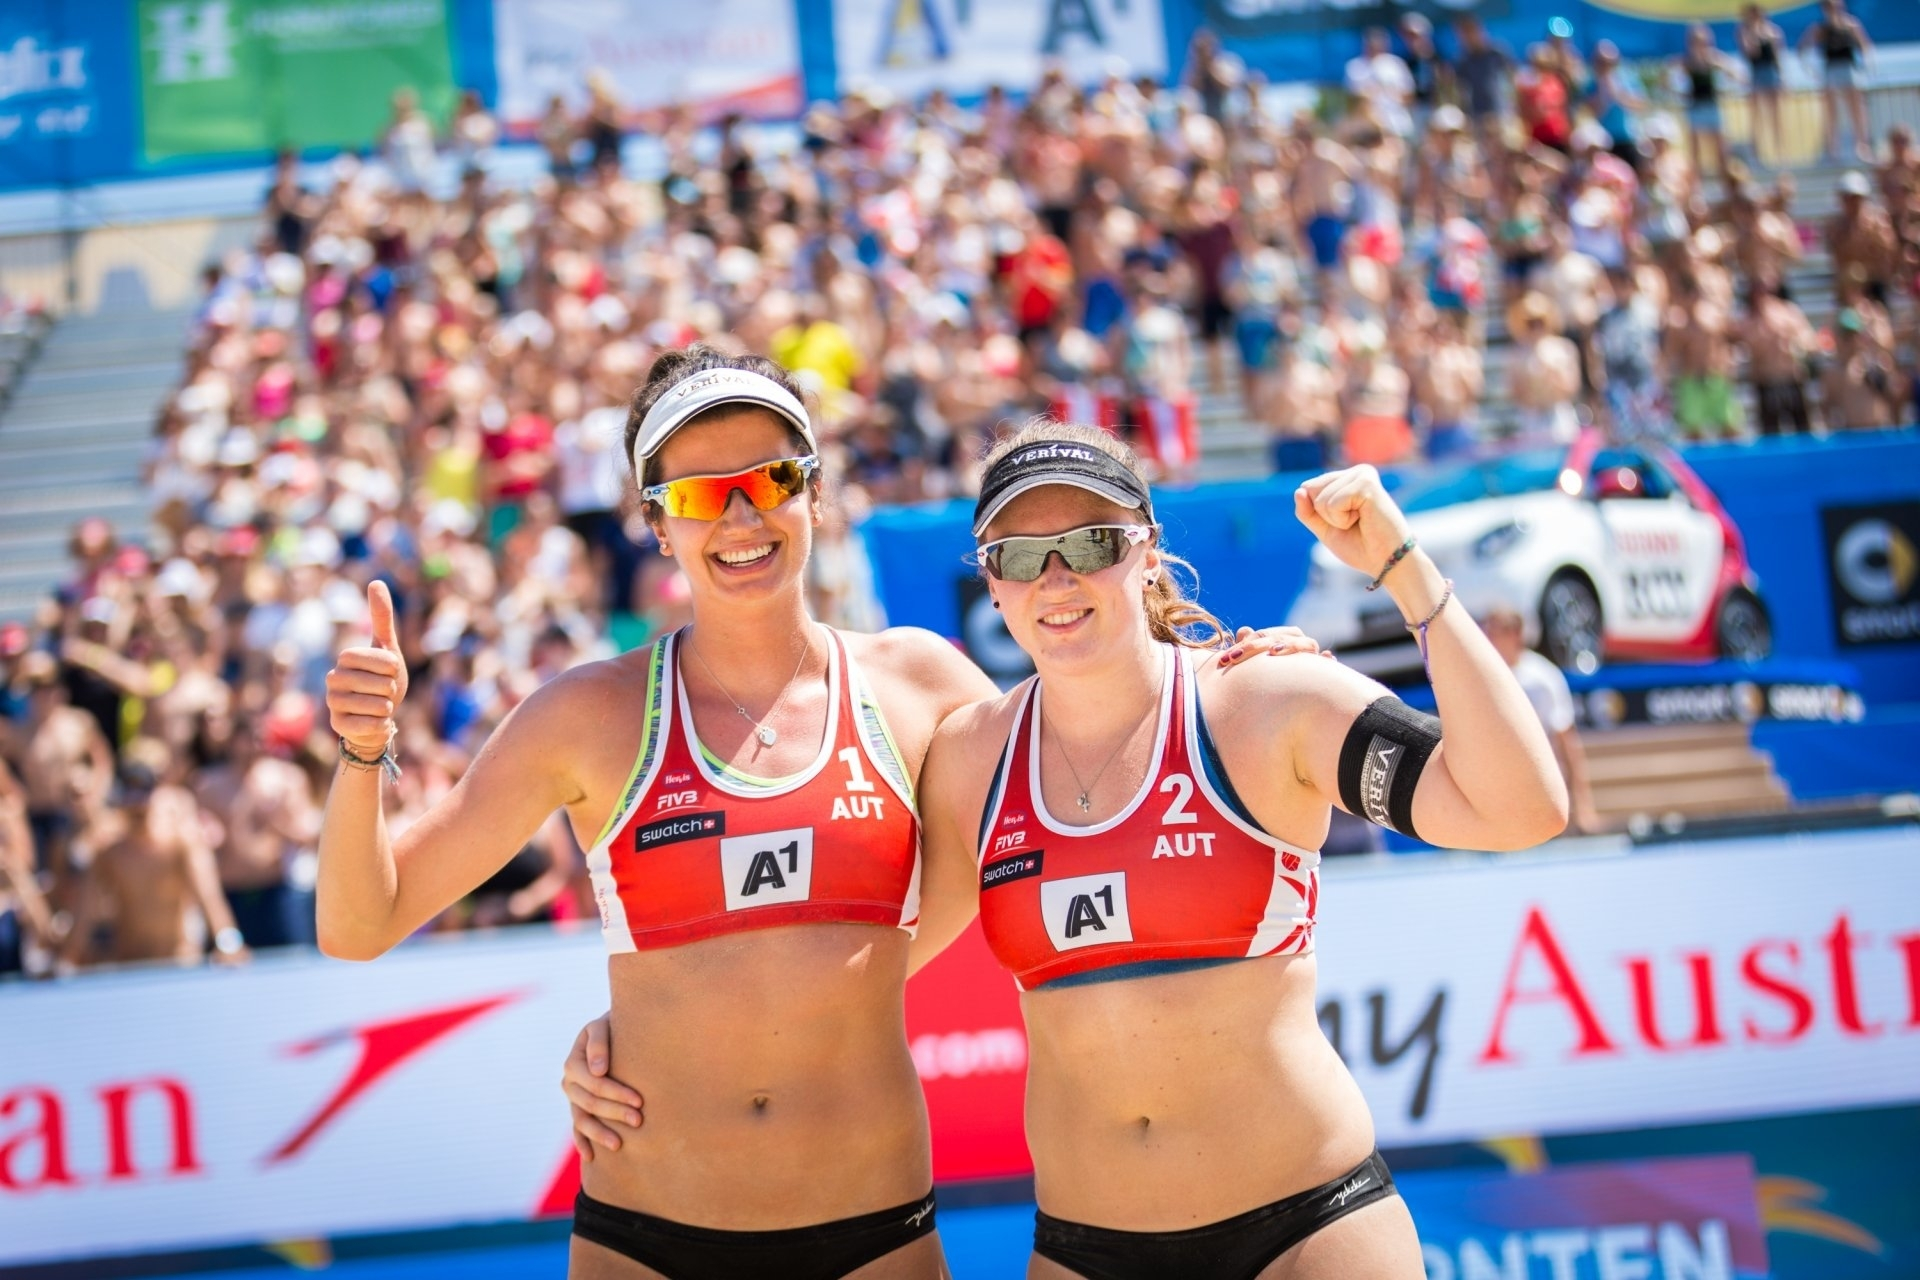 Lena Plesiutschnig and Katharina Schützenhöfer give the thumbs up when in action in 2016